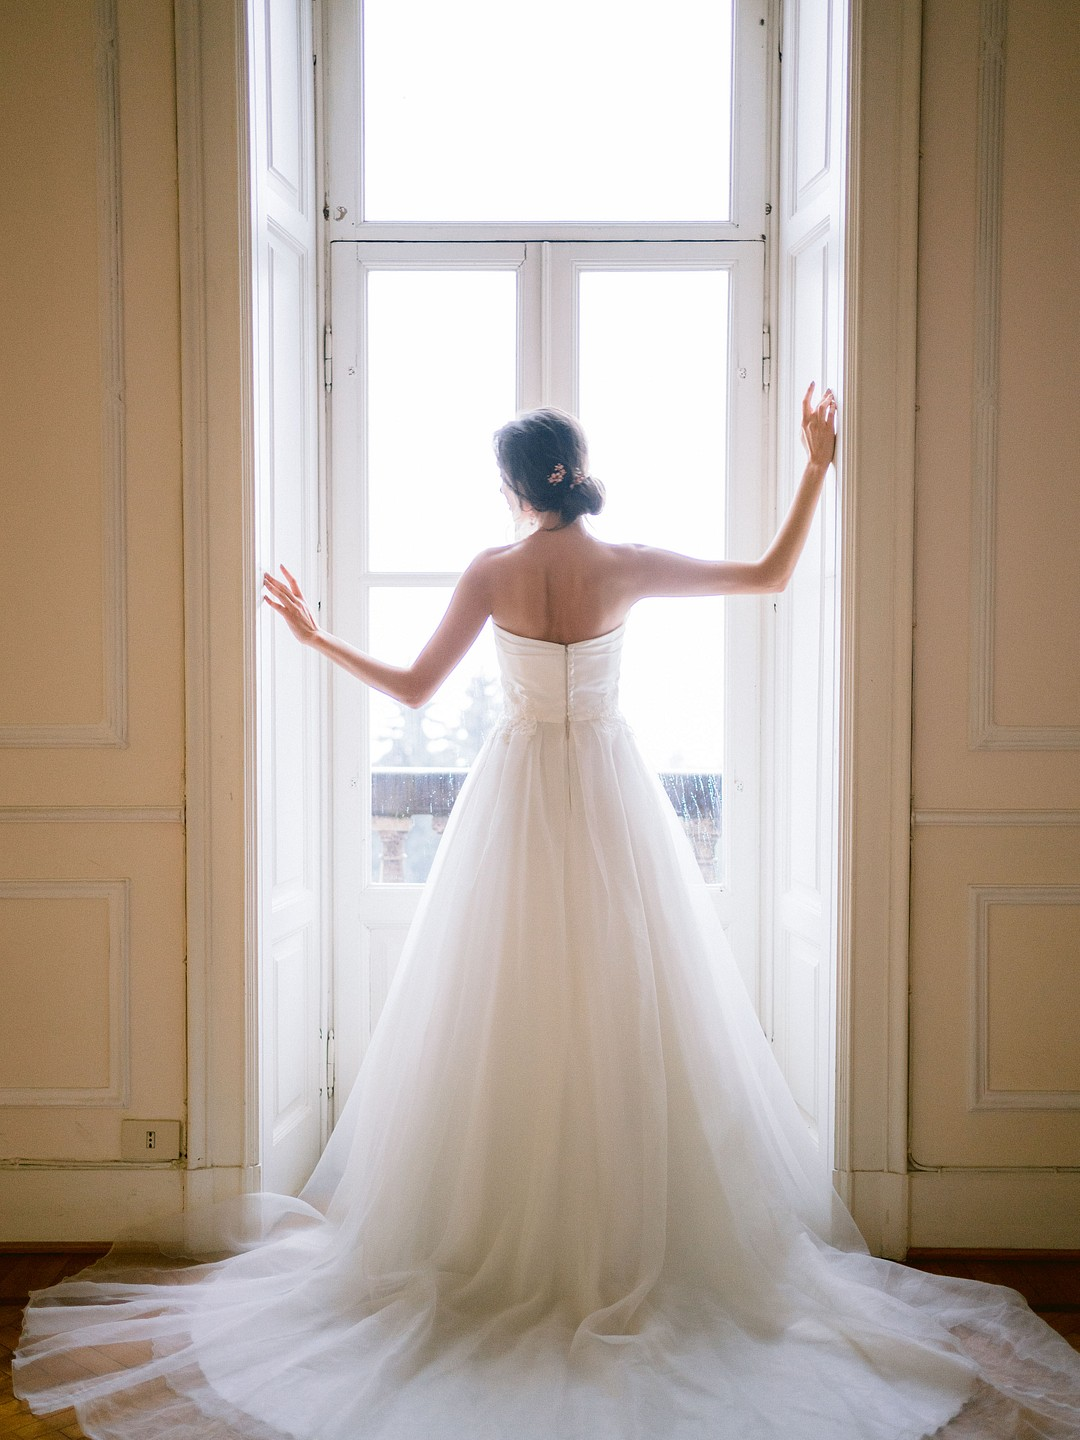 bride looking out the window as she gets ready